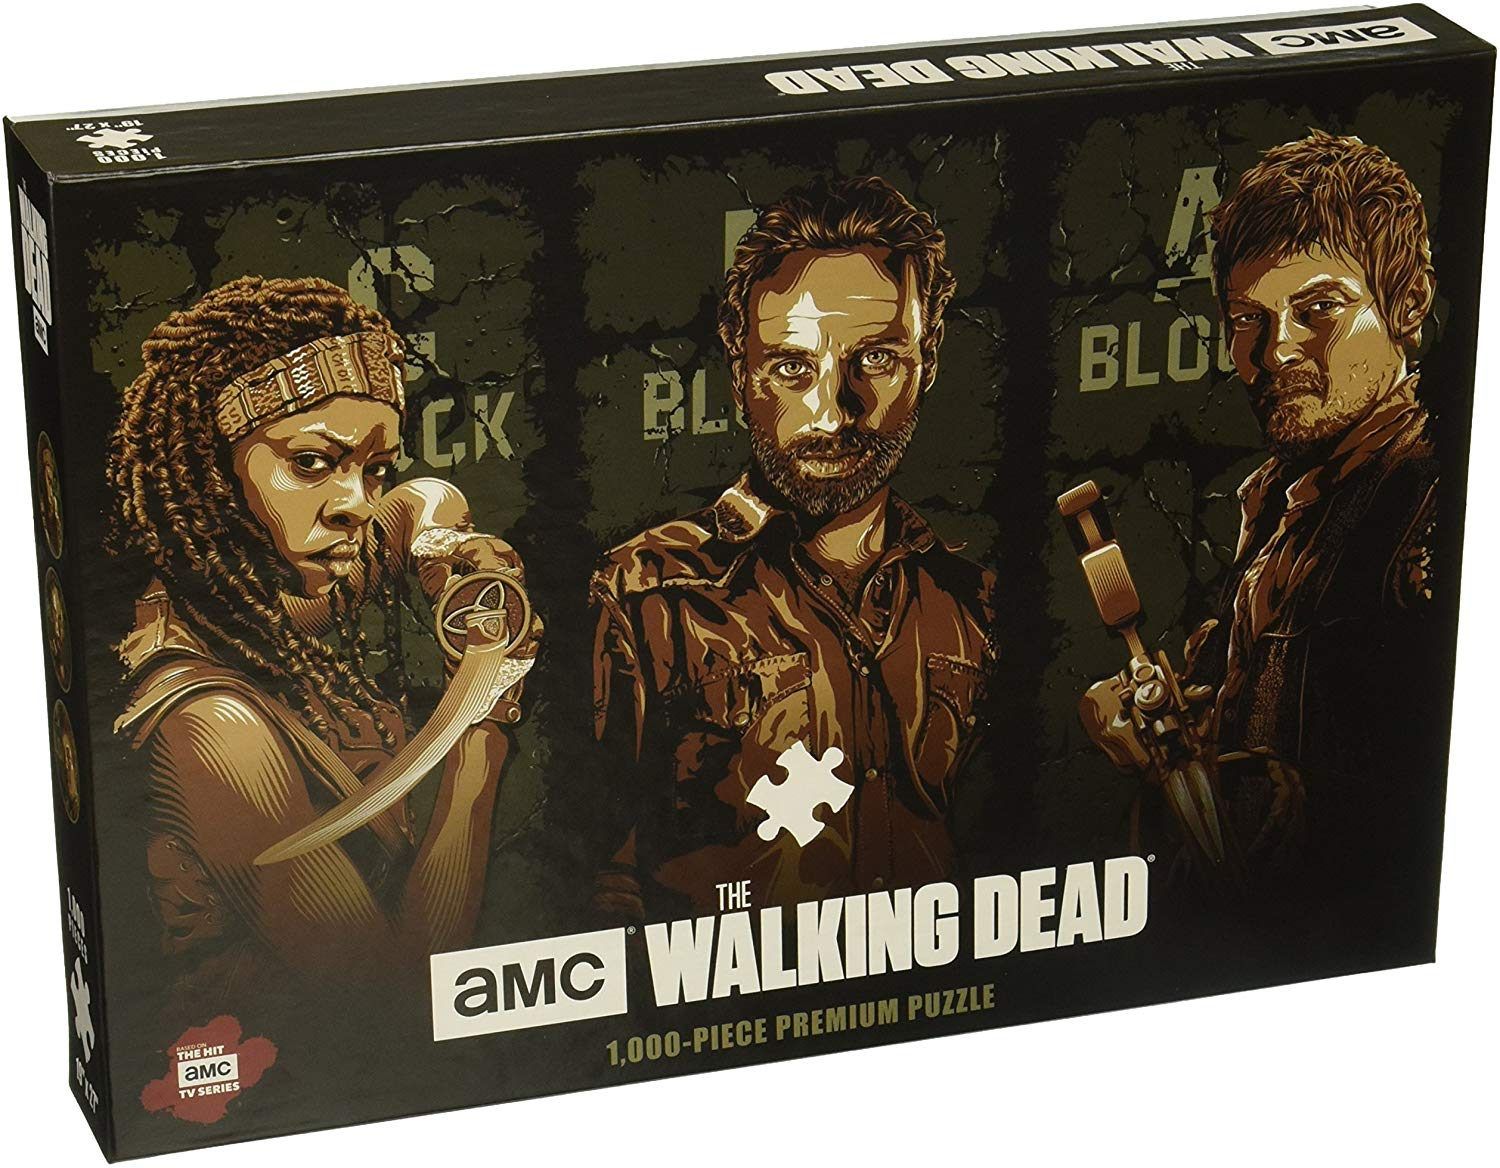 Puzzle: The Walking Dead - AMC